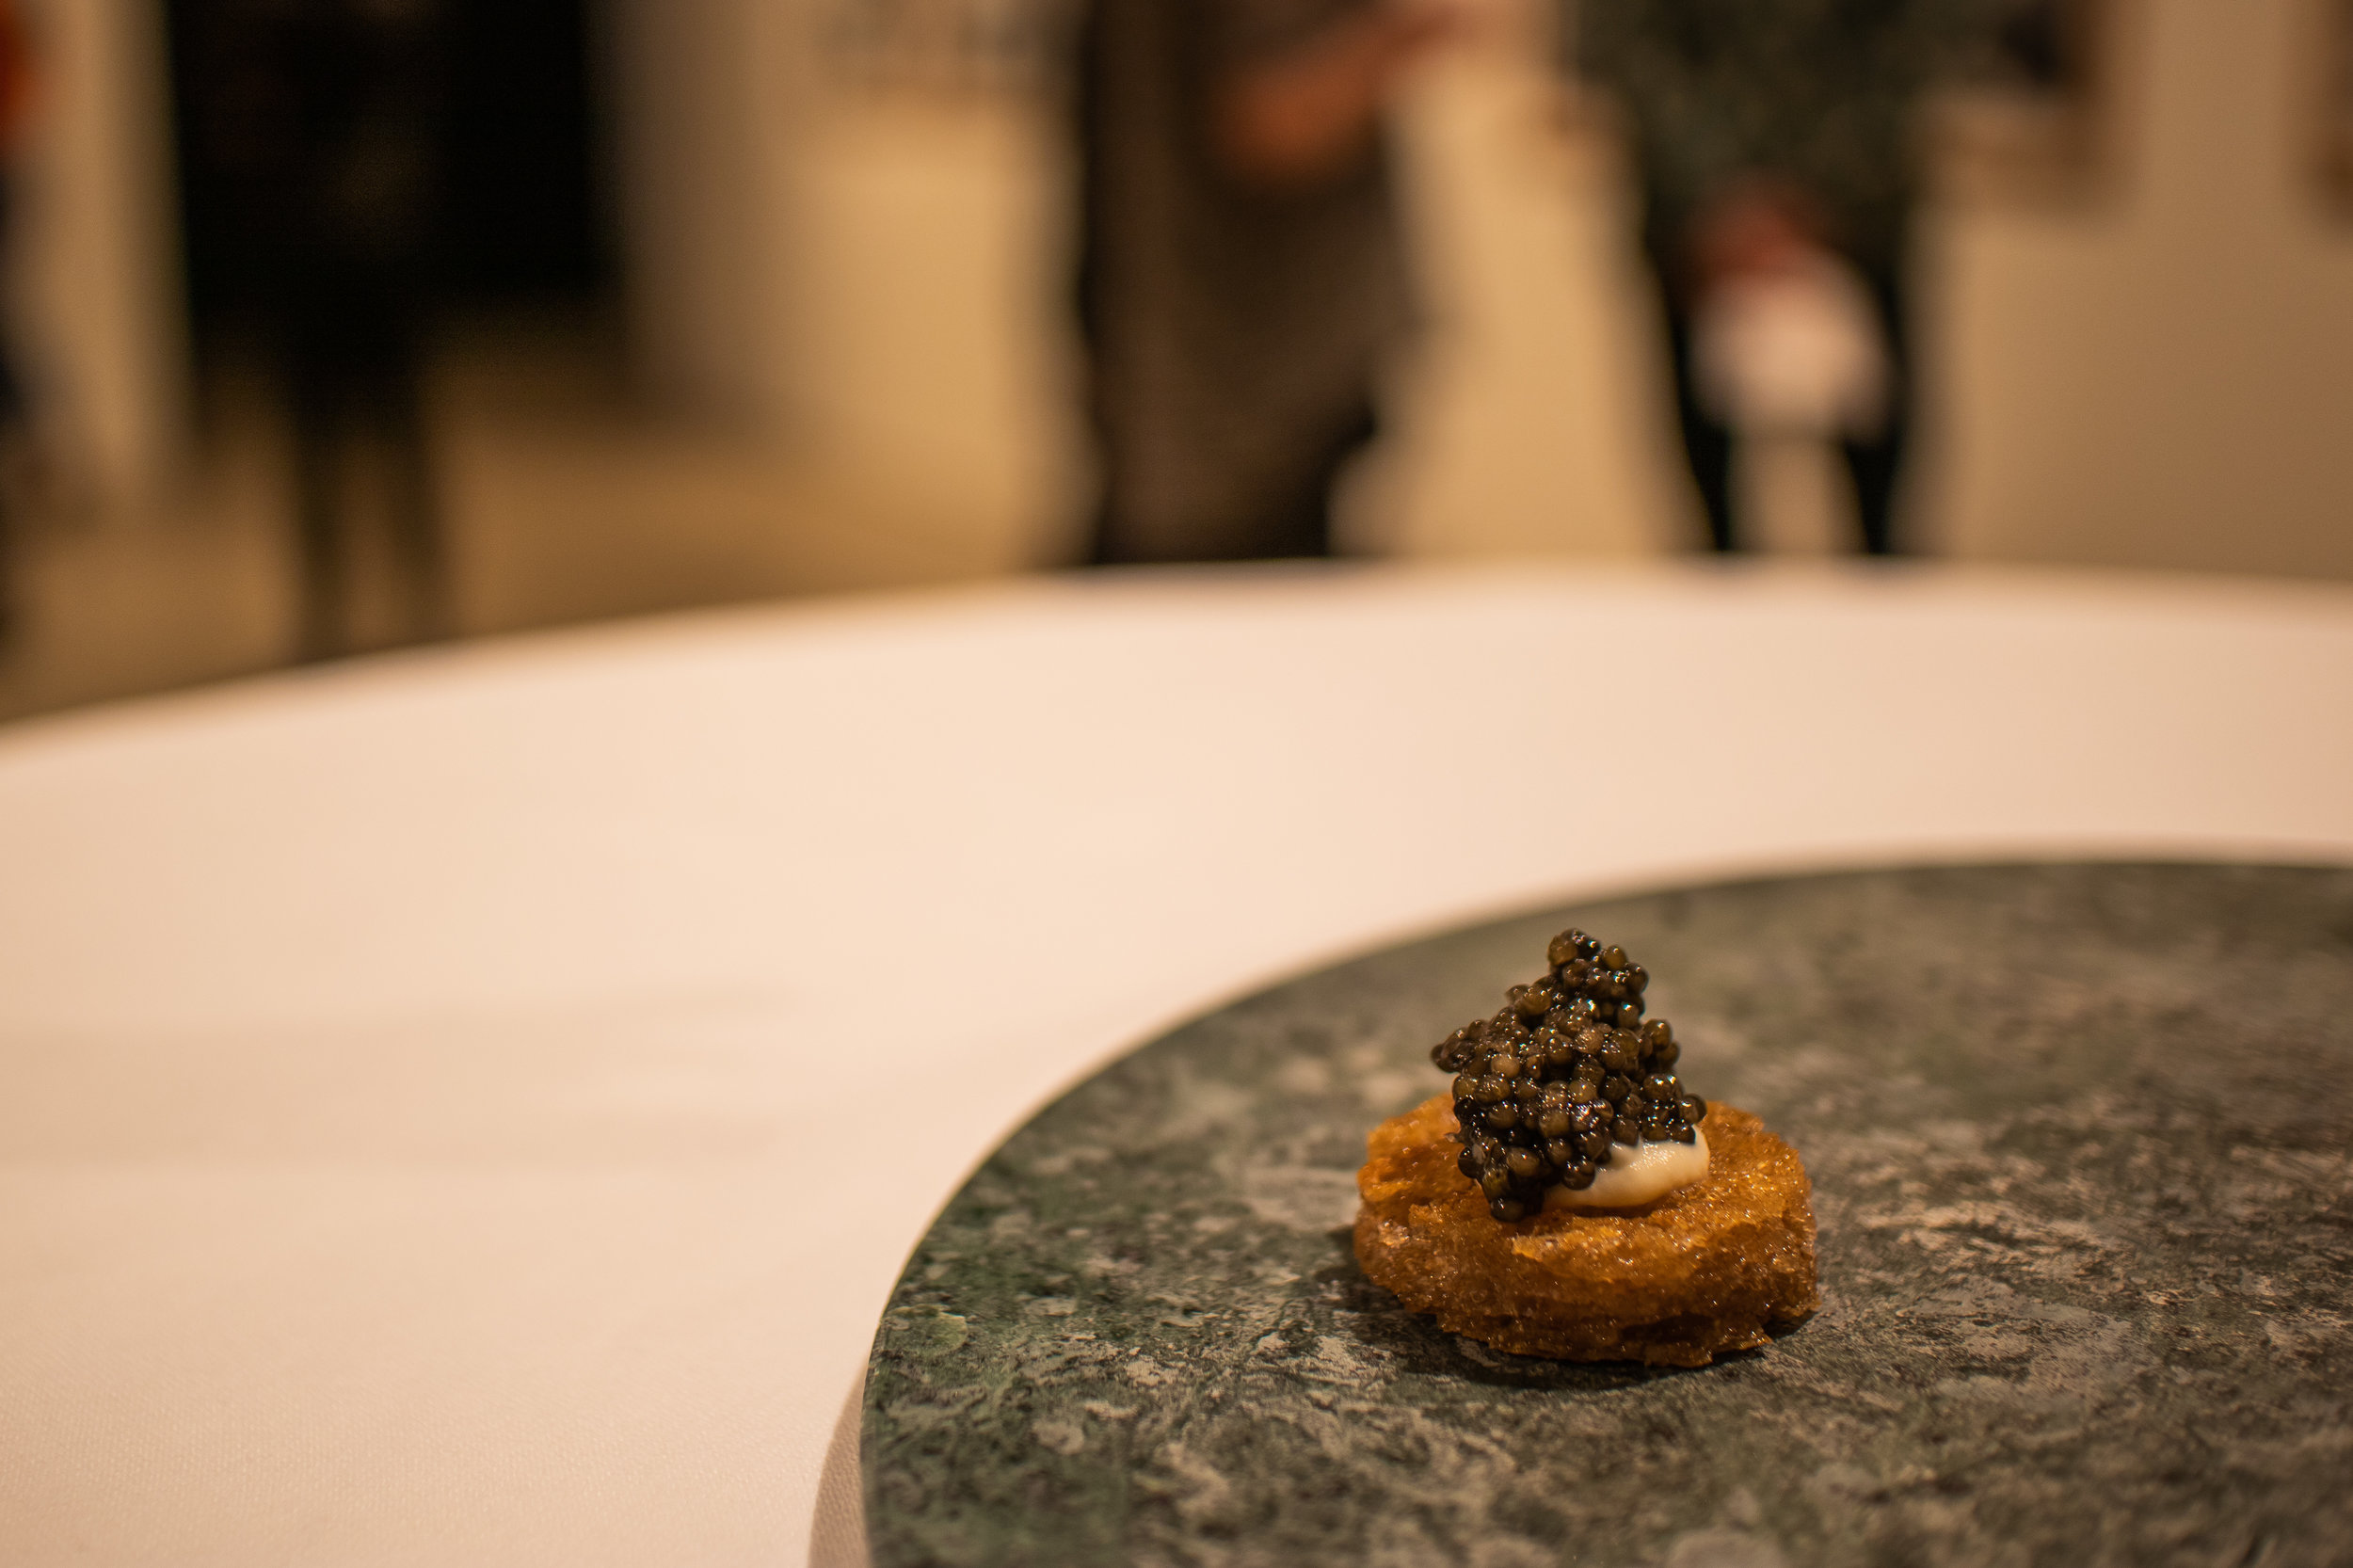 in the gallery - Prosjekt Gjerdeløa, 1980 – 2014, Marianne HeskeTwo servings of caviar, imitation and realBirds, Noelia Mora Solvez, 2018Soft-boiled quail egg served in egg cartonHouse, Doug Aitken, 2010Dehydrated mousse of chocolate, malt dirt and popping candy